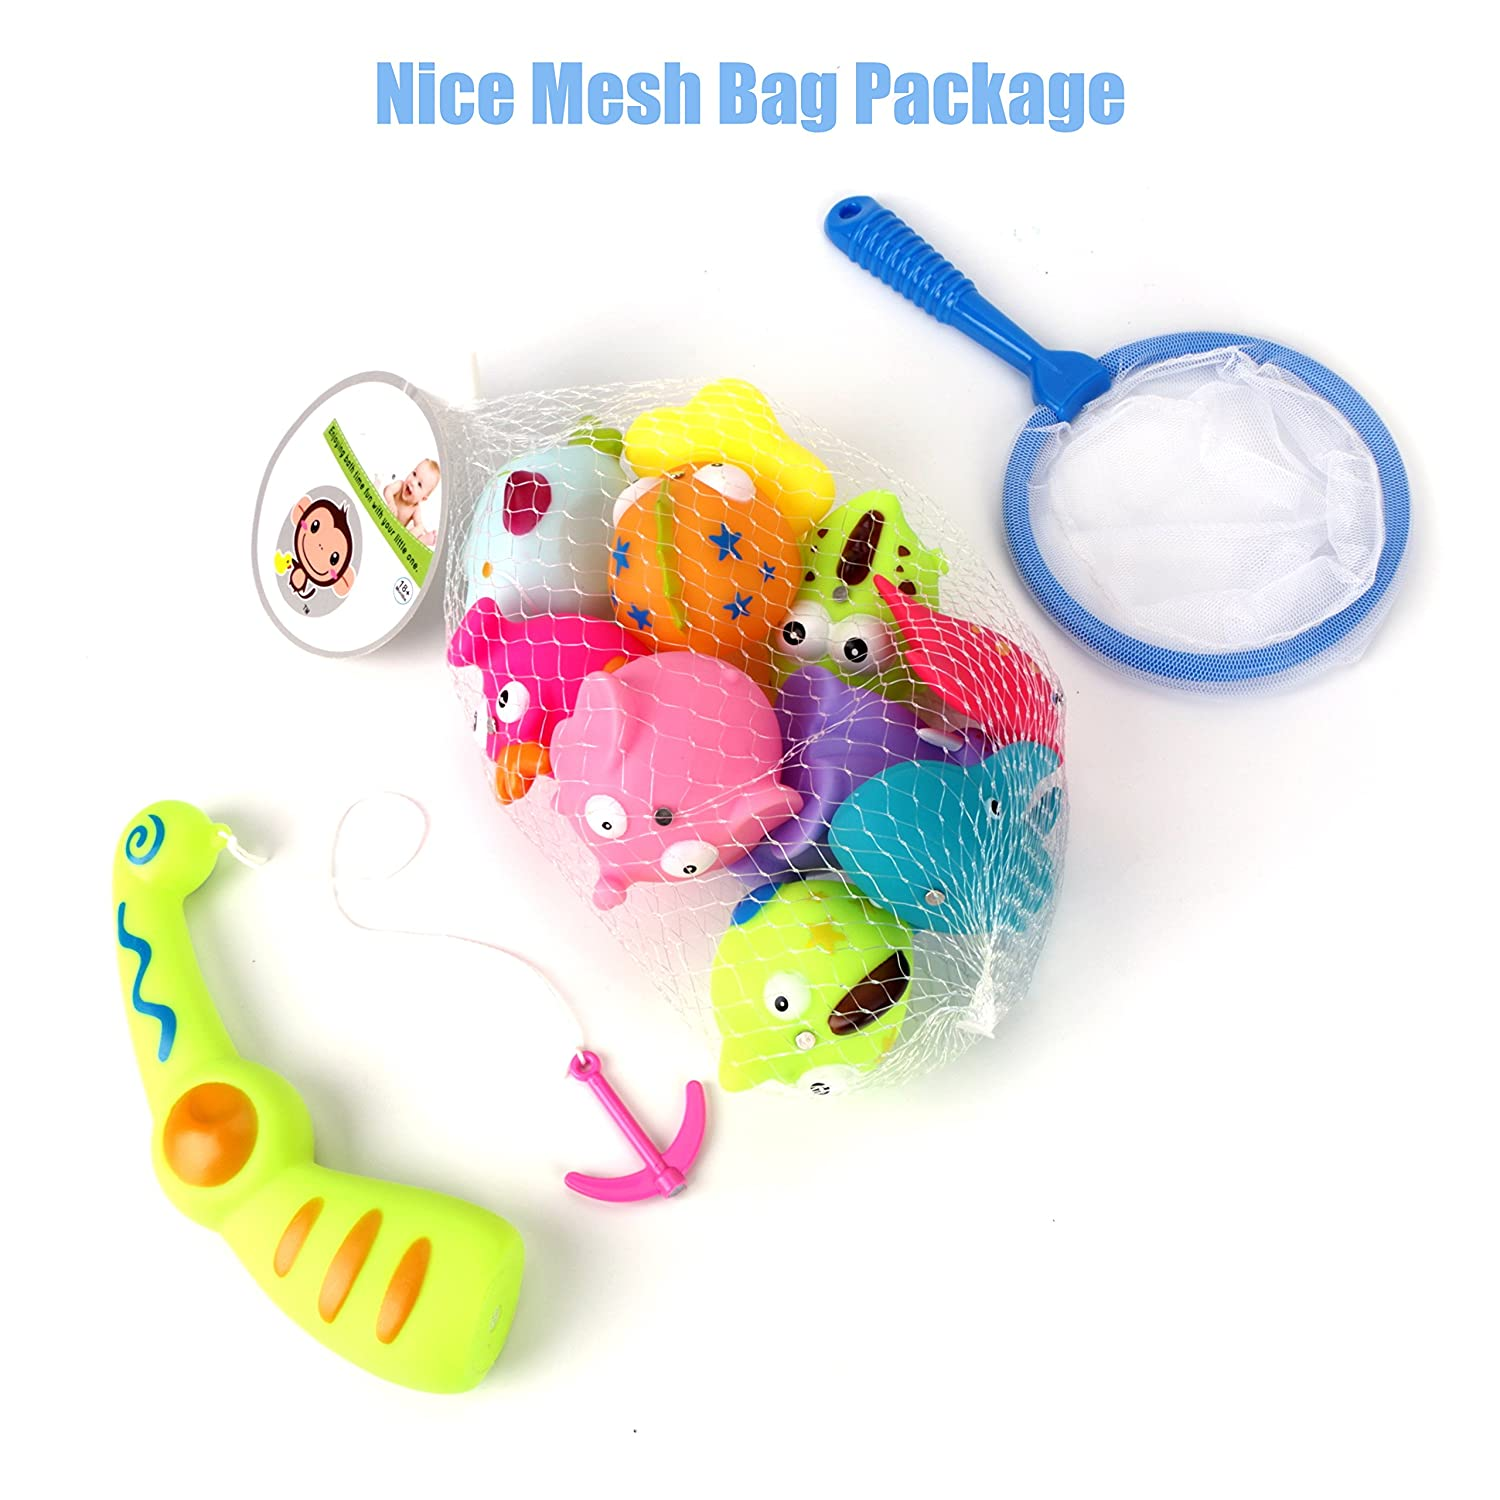 Net and Storage Bag Includes 10 Fish USATDD Baby Bath Fishing Toy,Bath Toy Fishing Game Catch Cute Fish in The Tub with Magnetic Fishing Rod Fishing Rod